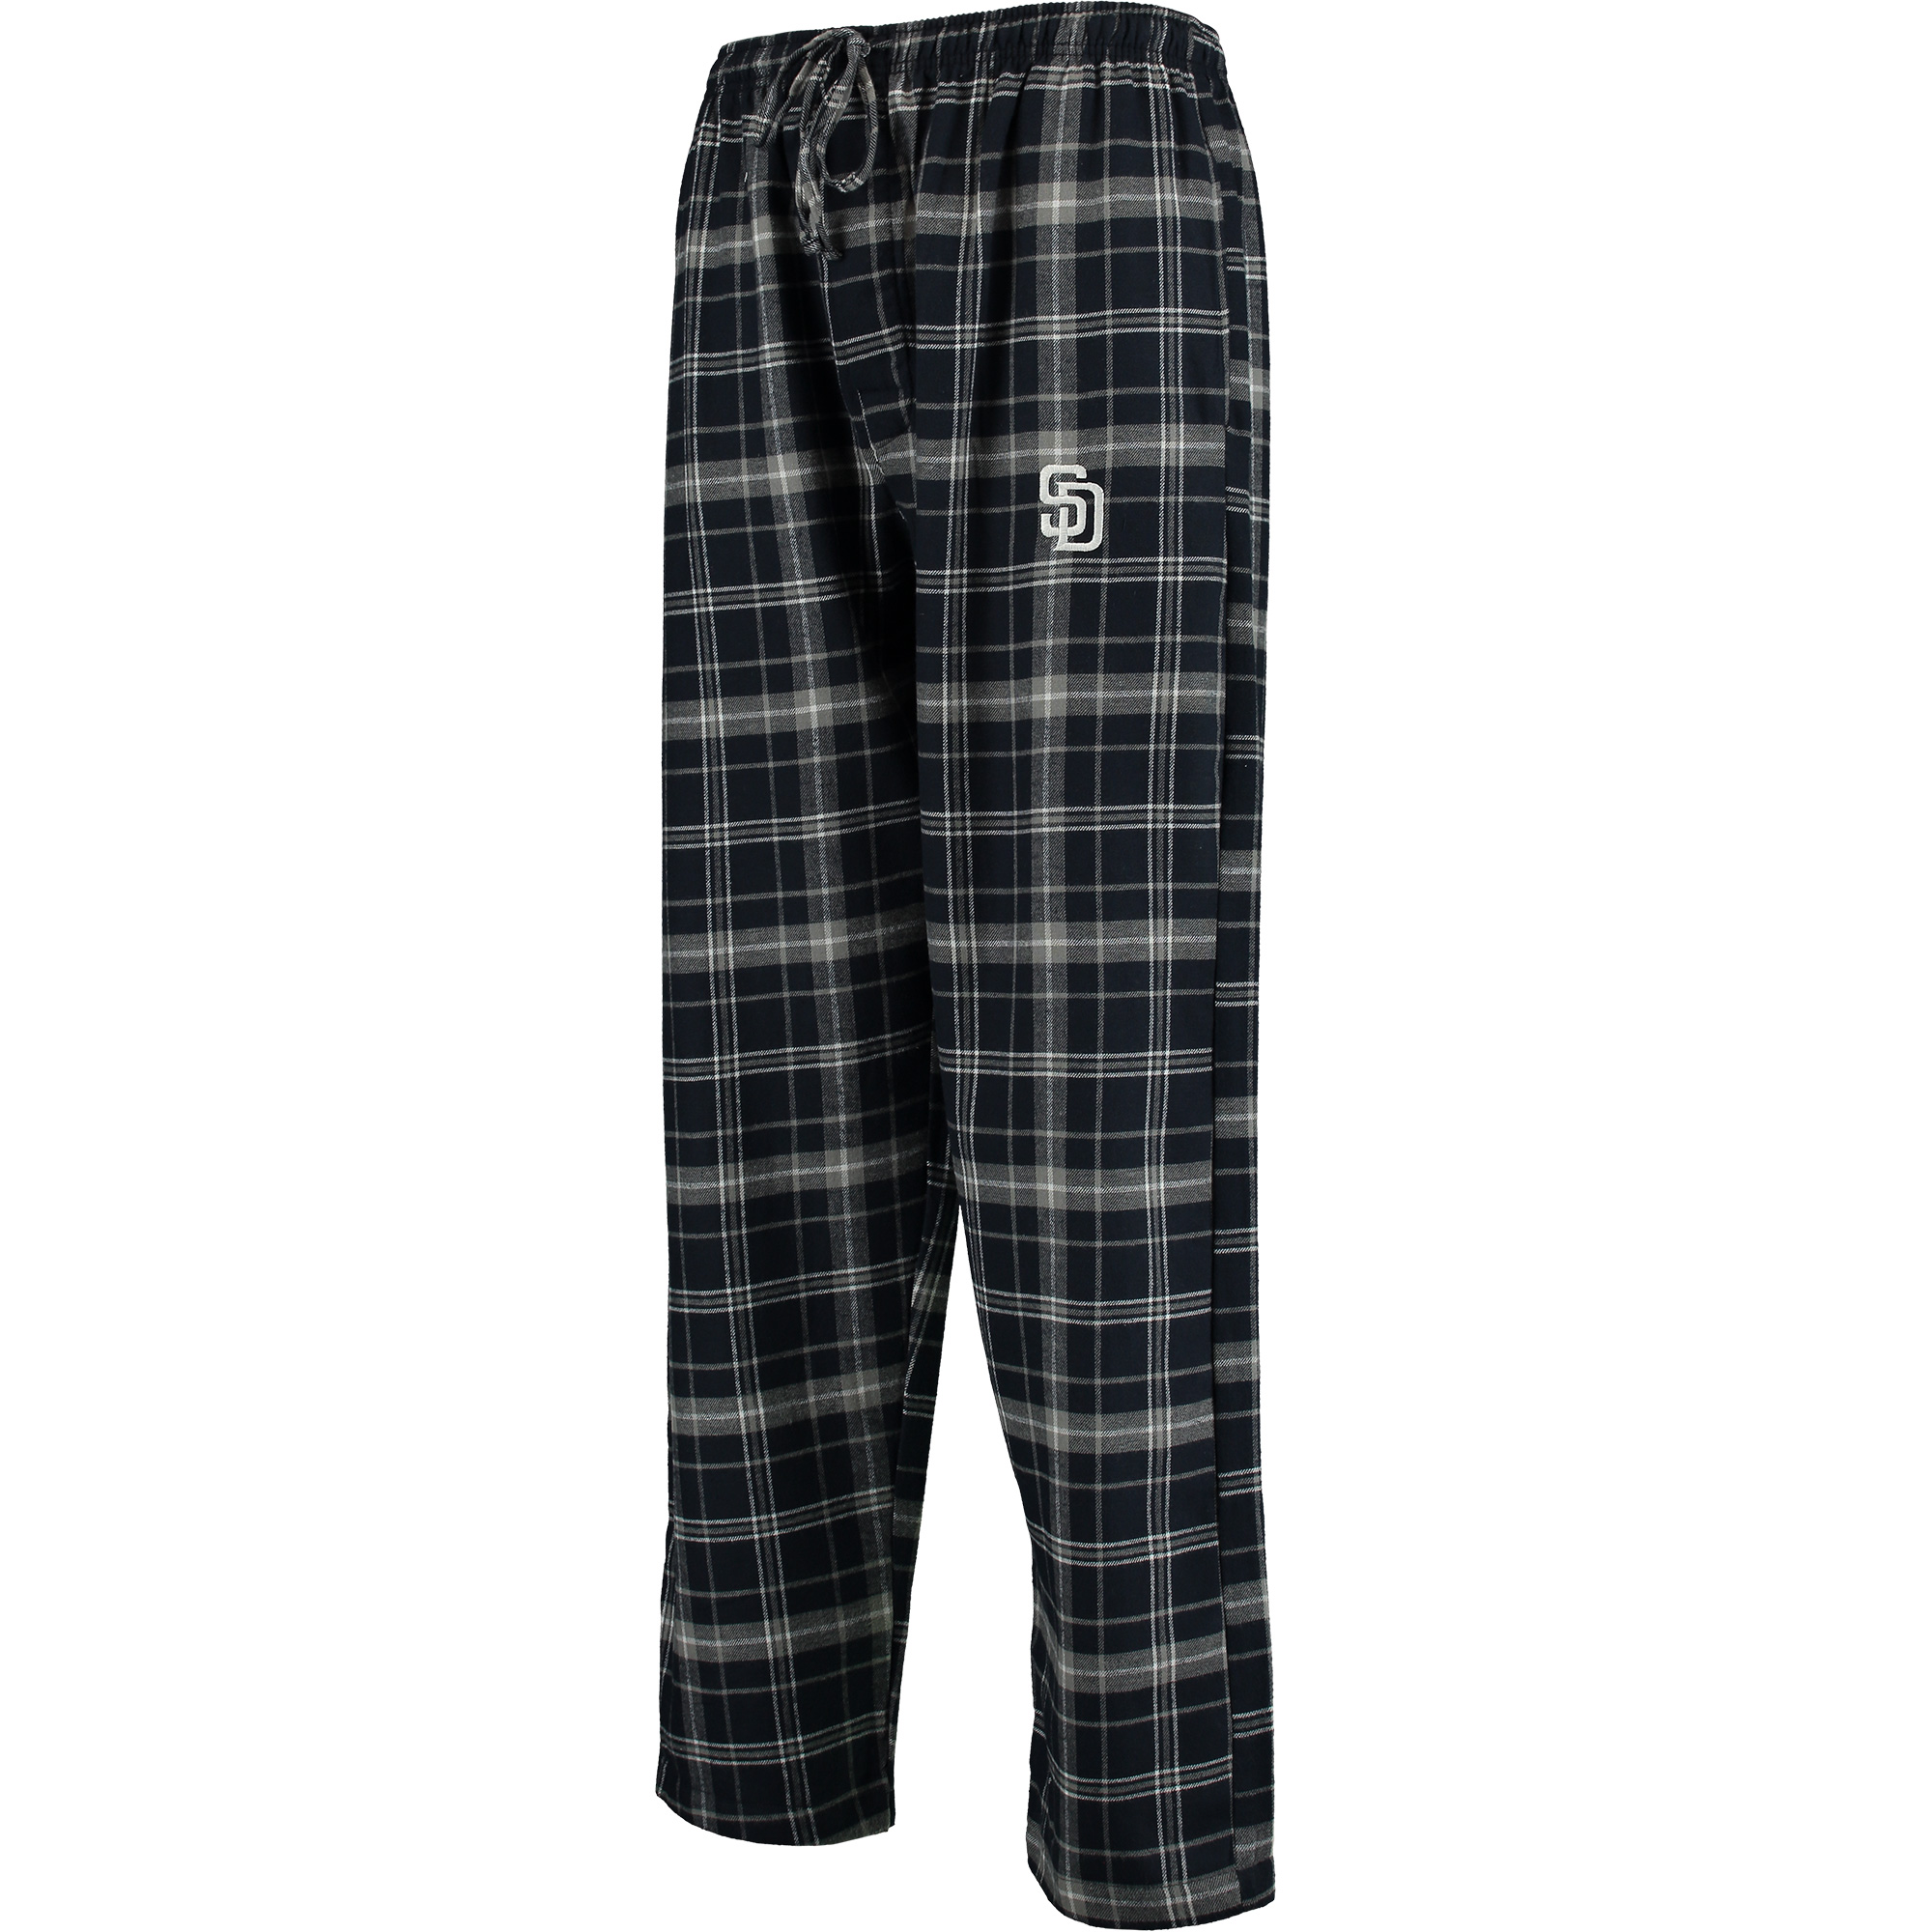 San Diego Padres Concepts Sport Ultimate Plaid Flannel Pants - Navy/Gray